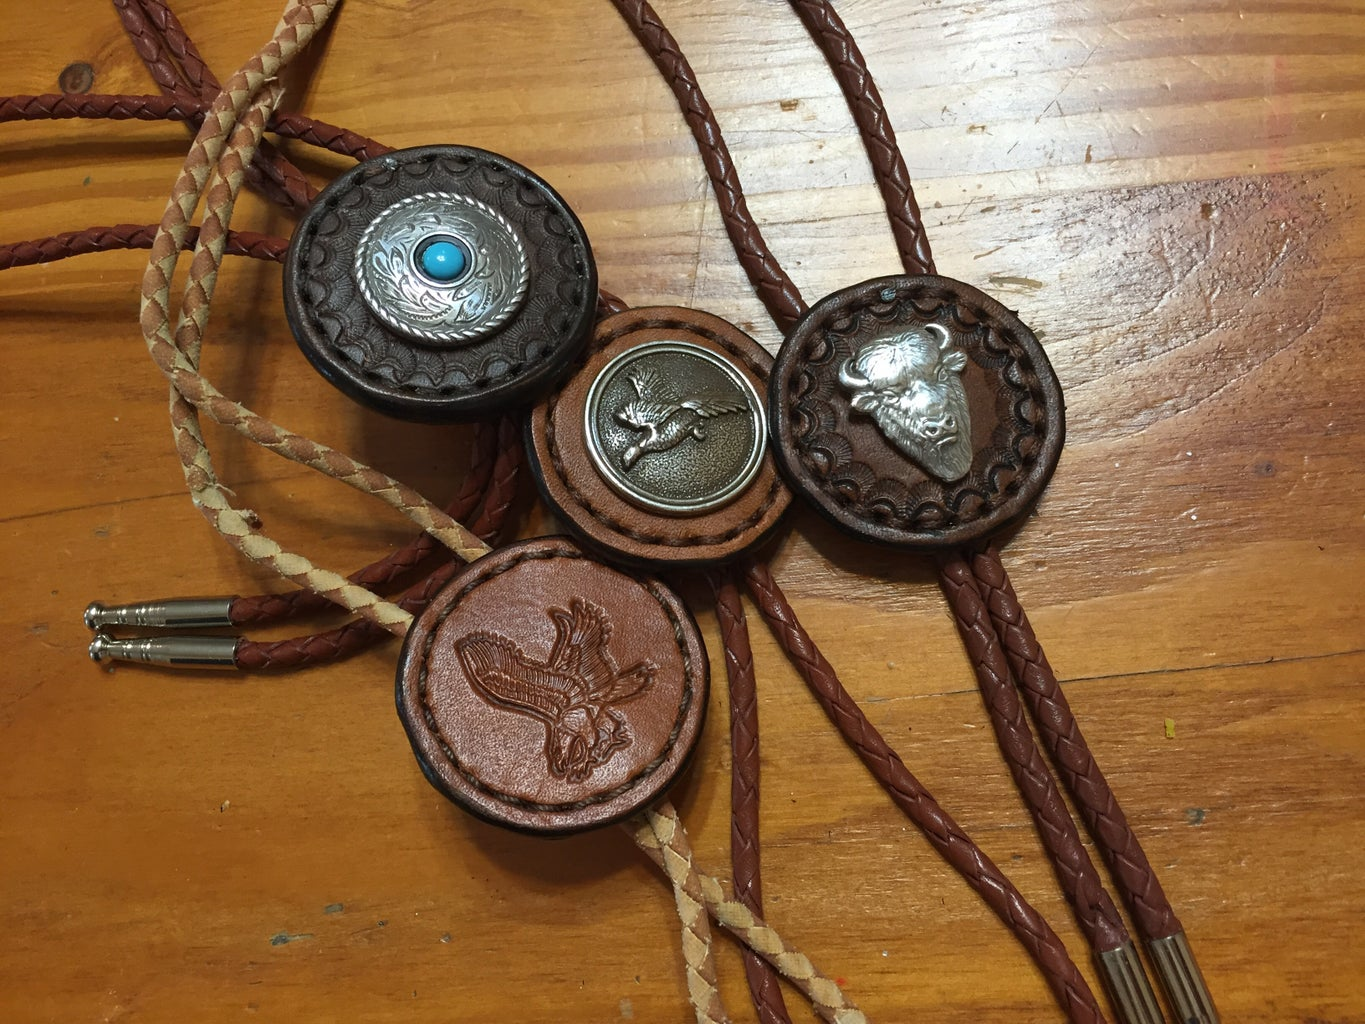 Enjoy Your New Leather Bolo Tie